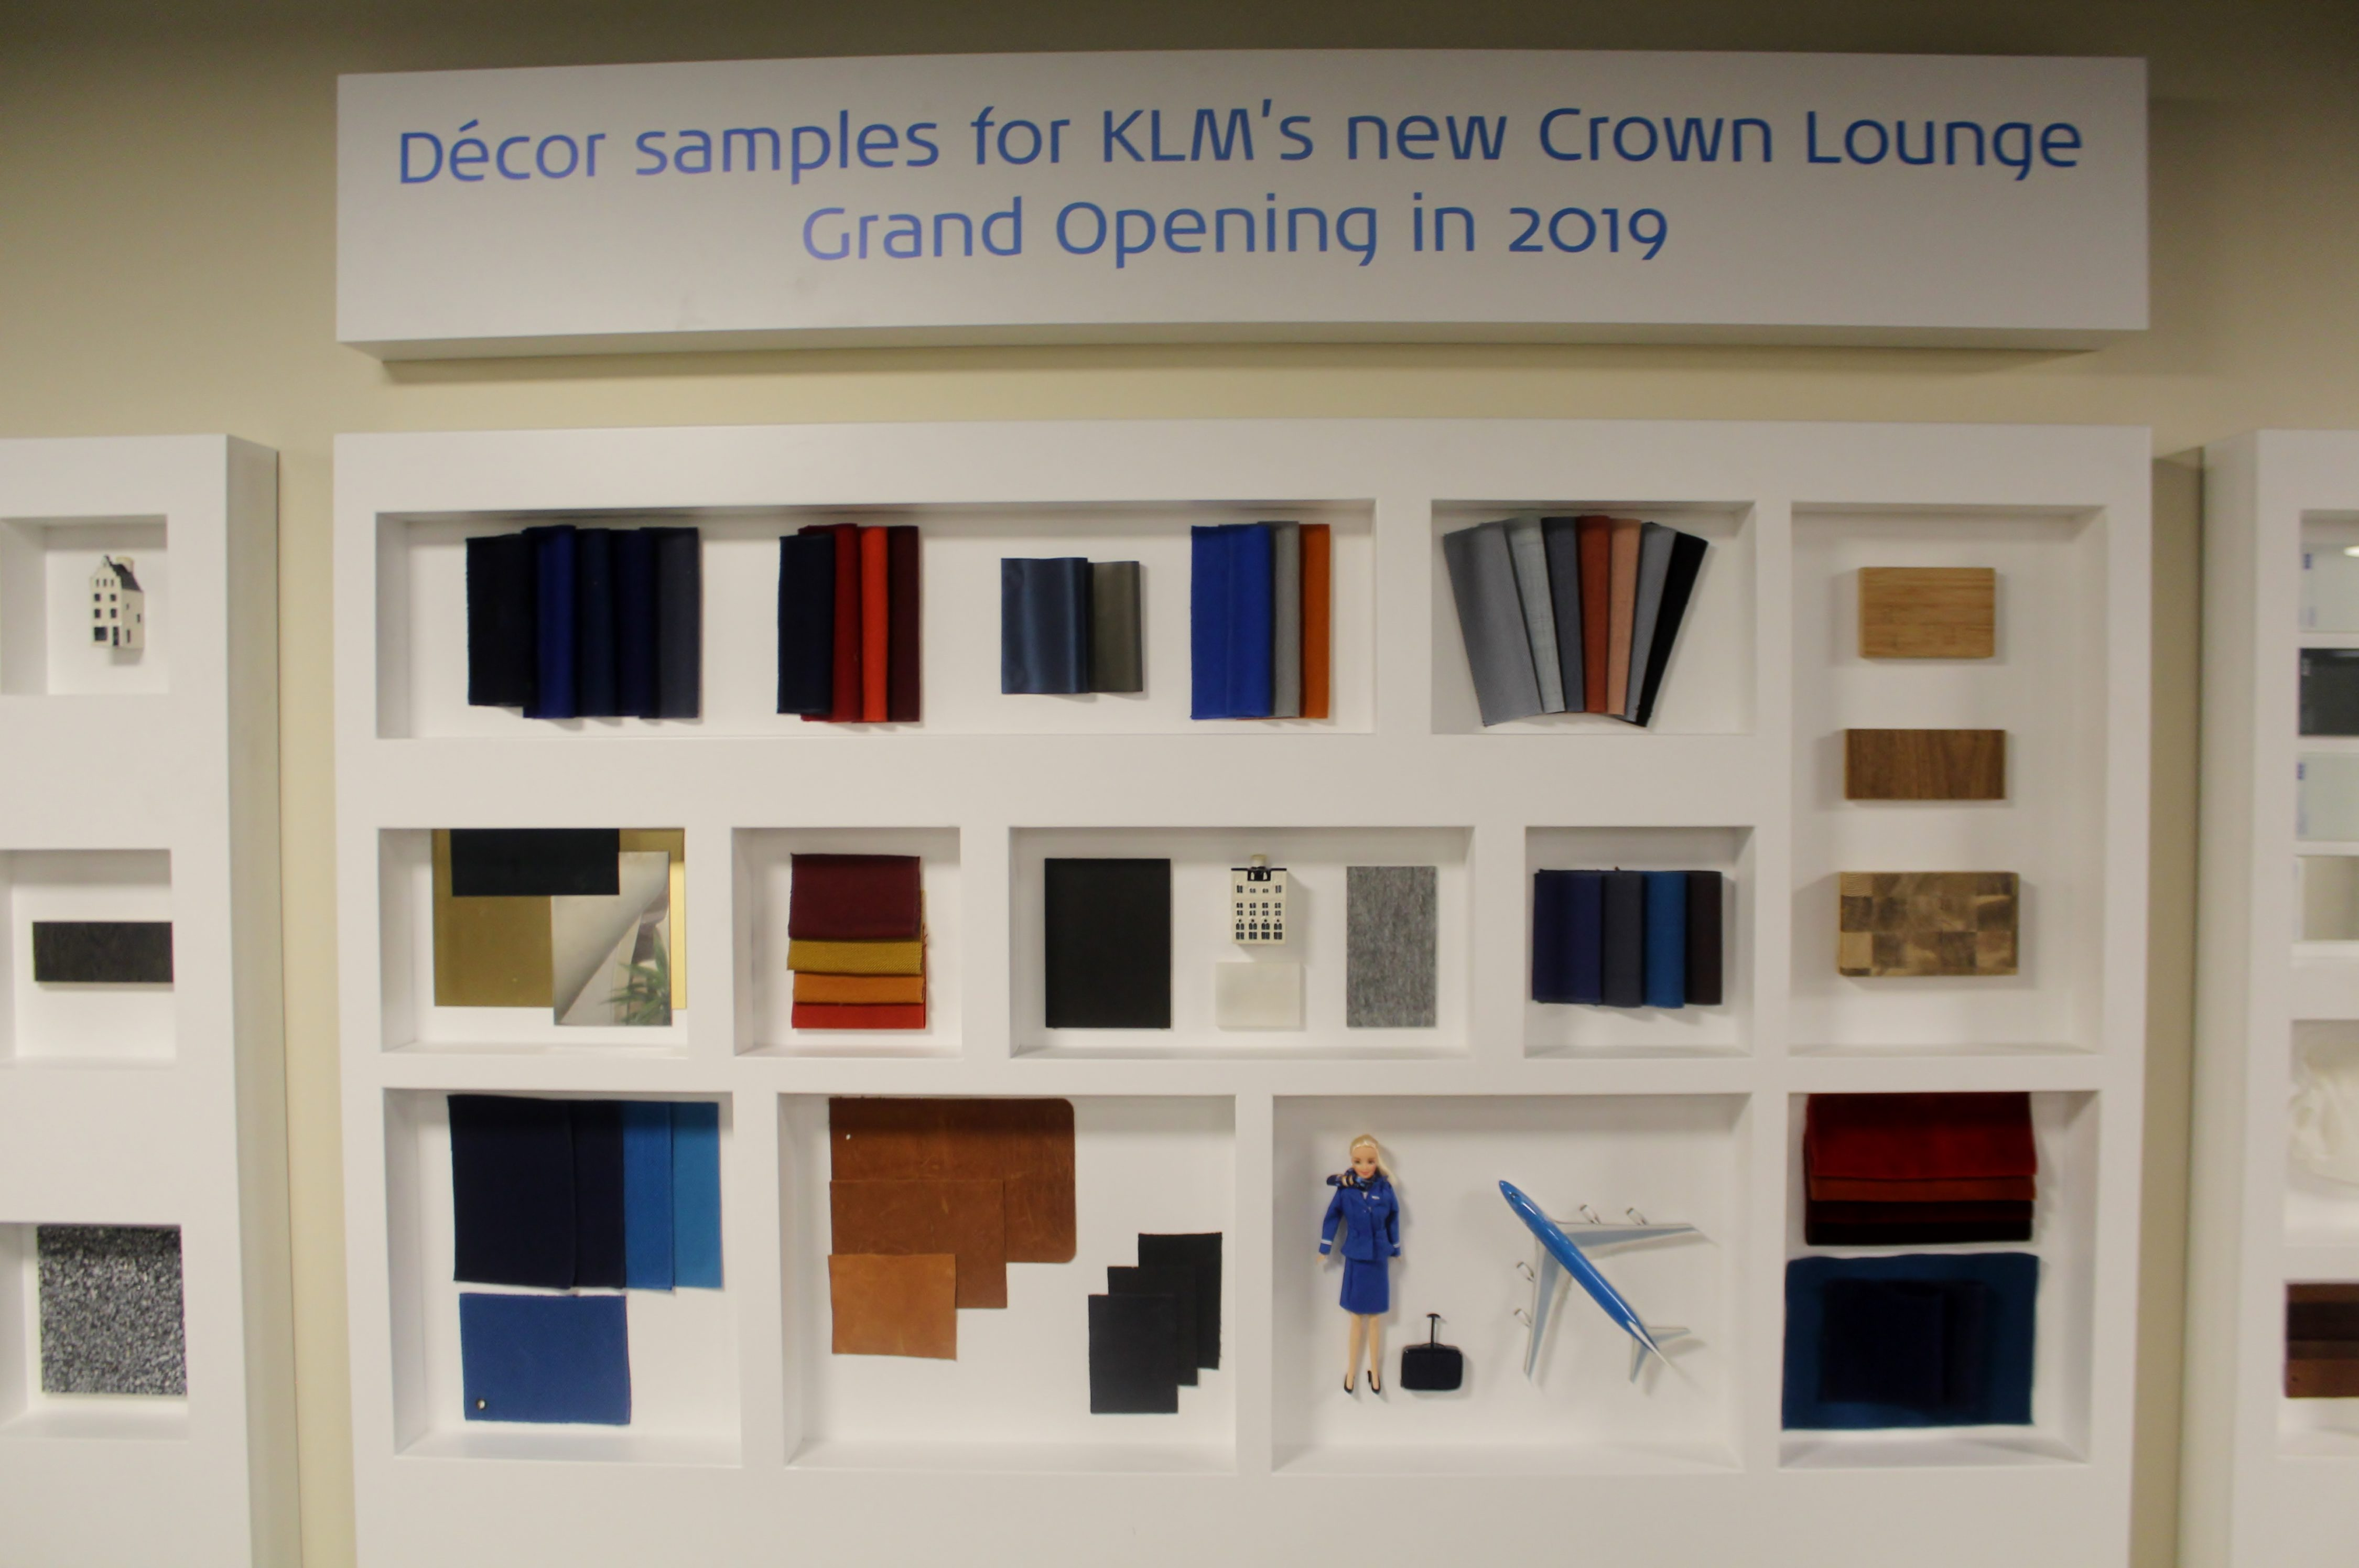 The new design in the new KLM Crown Lounge at Amsterdam Schiphol